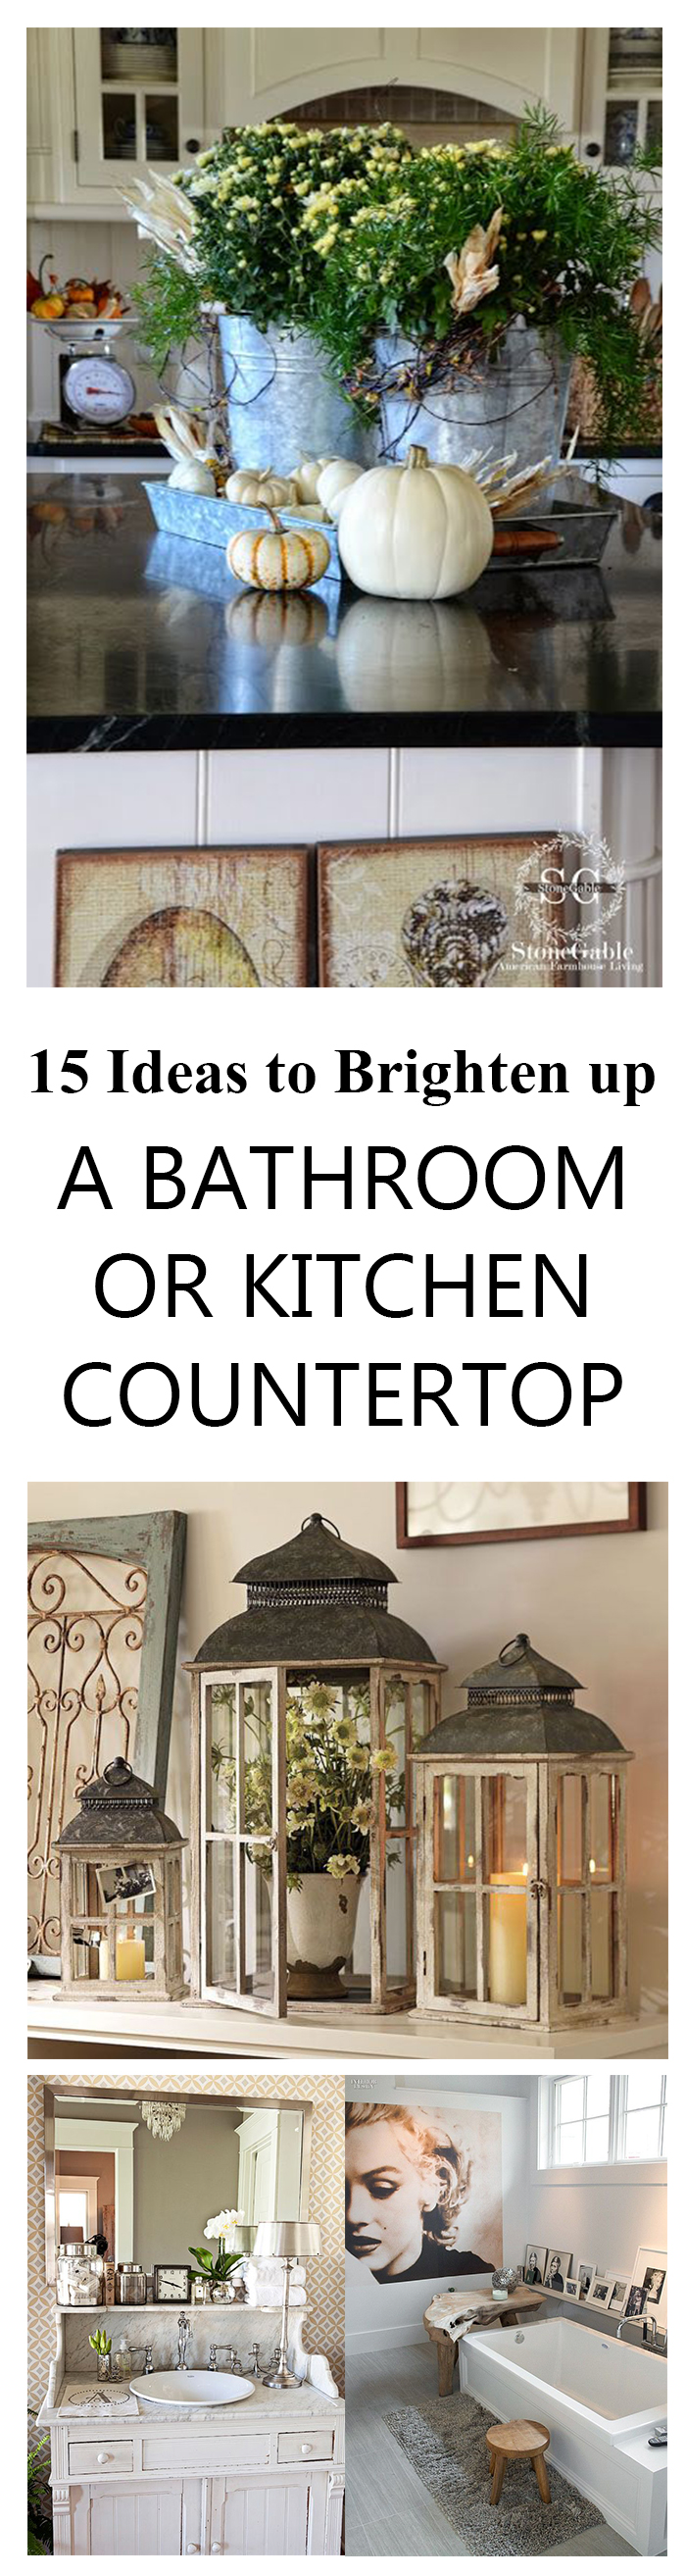 15 Ideas to Brighten up a Bathroom or Kitchen Countertop (1)